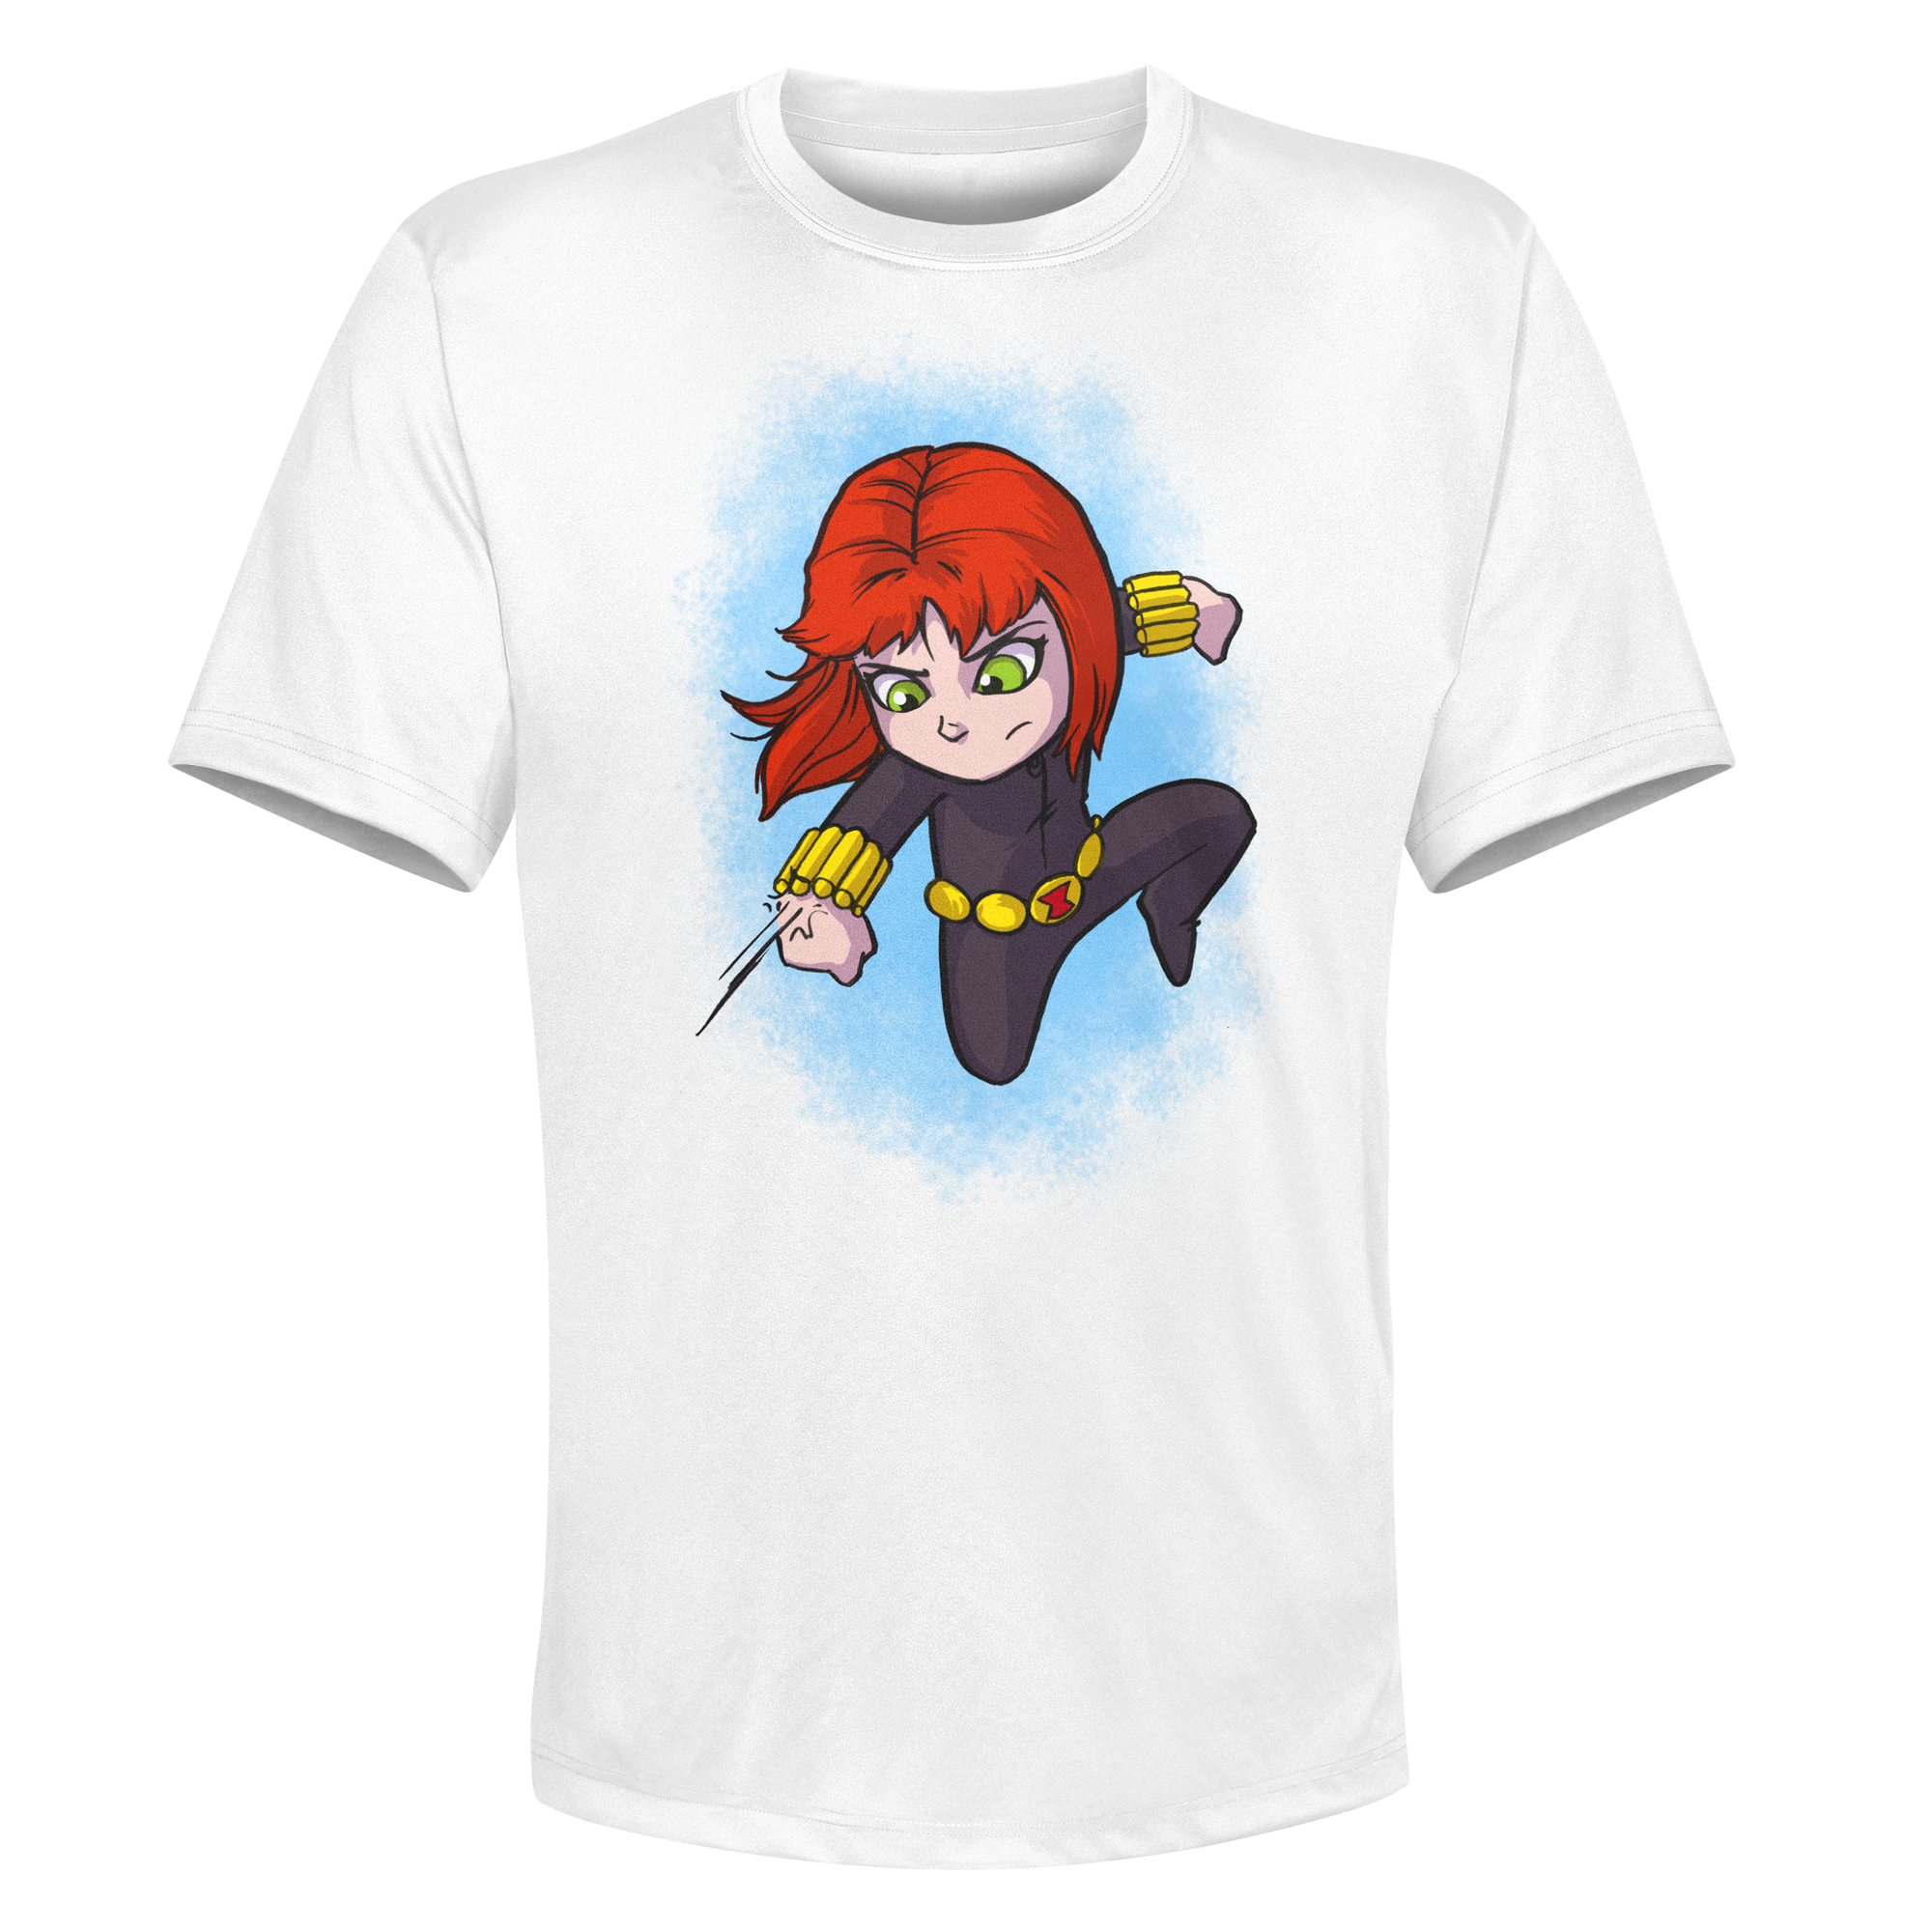 Black Widow- White Performance Graphic Tee